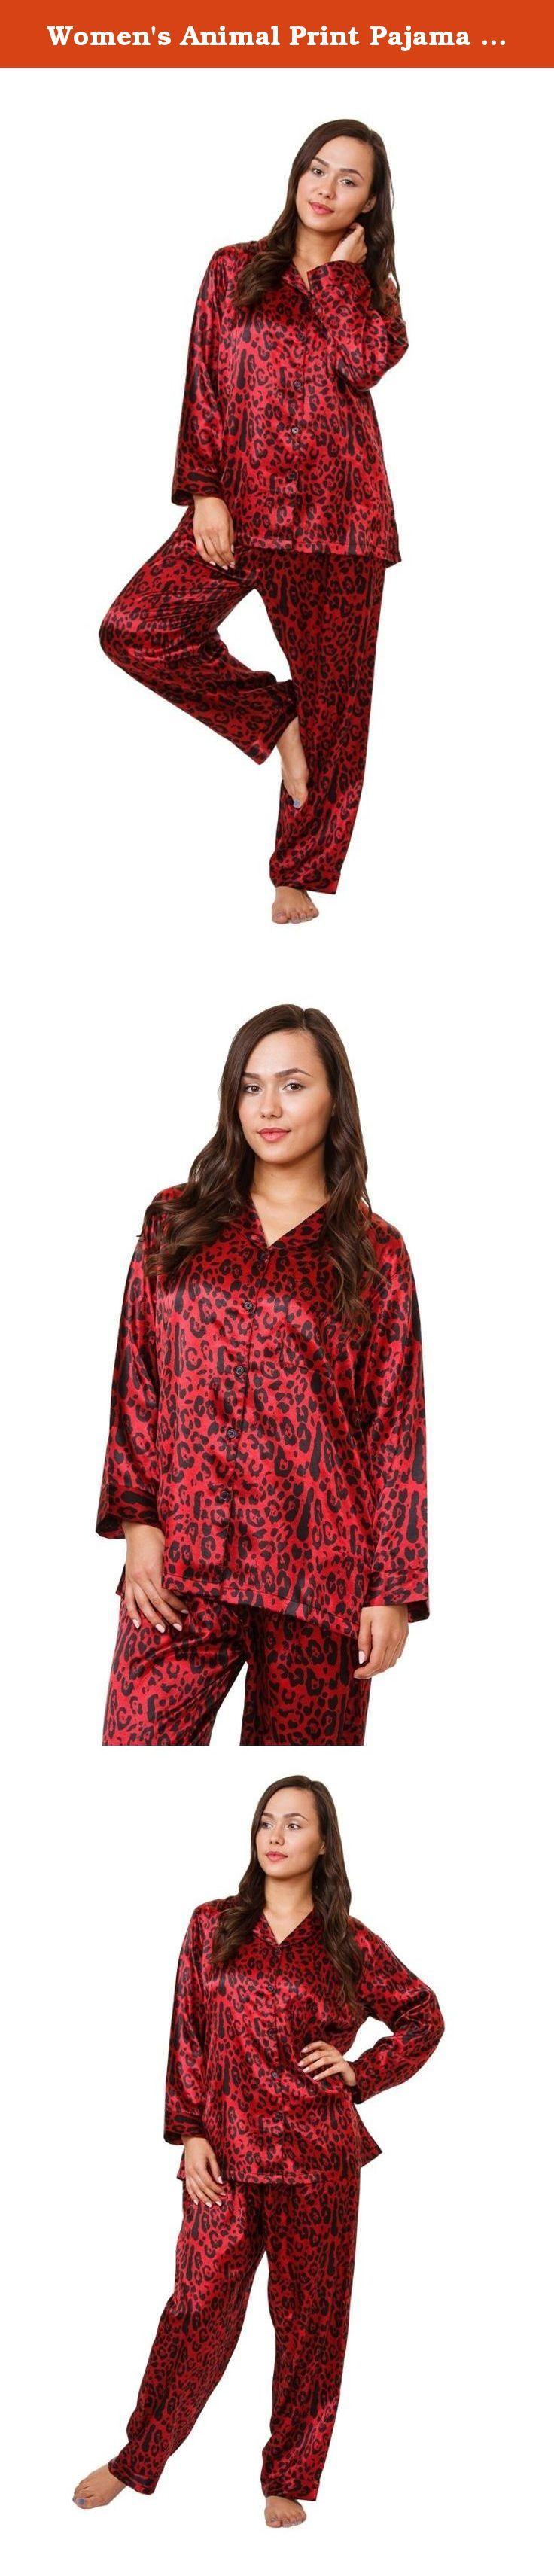 Women's Animal Print Pajama Set, 5 Prints in Classic Style, Up2date Fashion Style#PJ-12 (XL, Red Tiger). These top quality pajama sets are from up2date classic collection. You will love this unique prints which is available in five color choices. This PJ set is carefully tailored and will be delivered to you sealed packed with original tags. We will make sure that you are completely satisfied with your purchase. Please contact us if you have any questions or concerns.